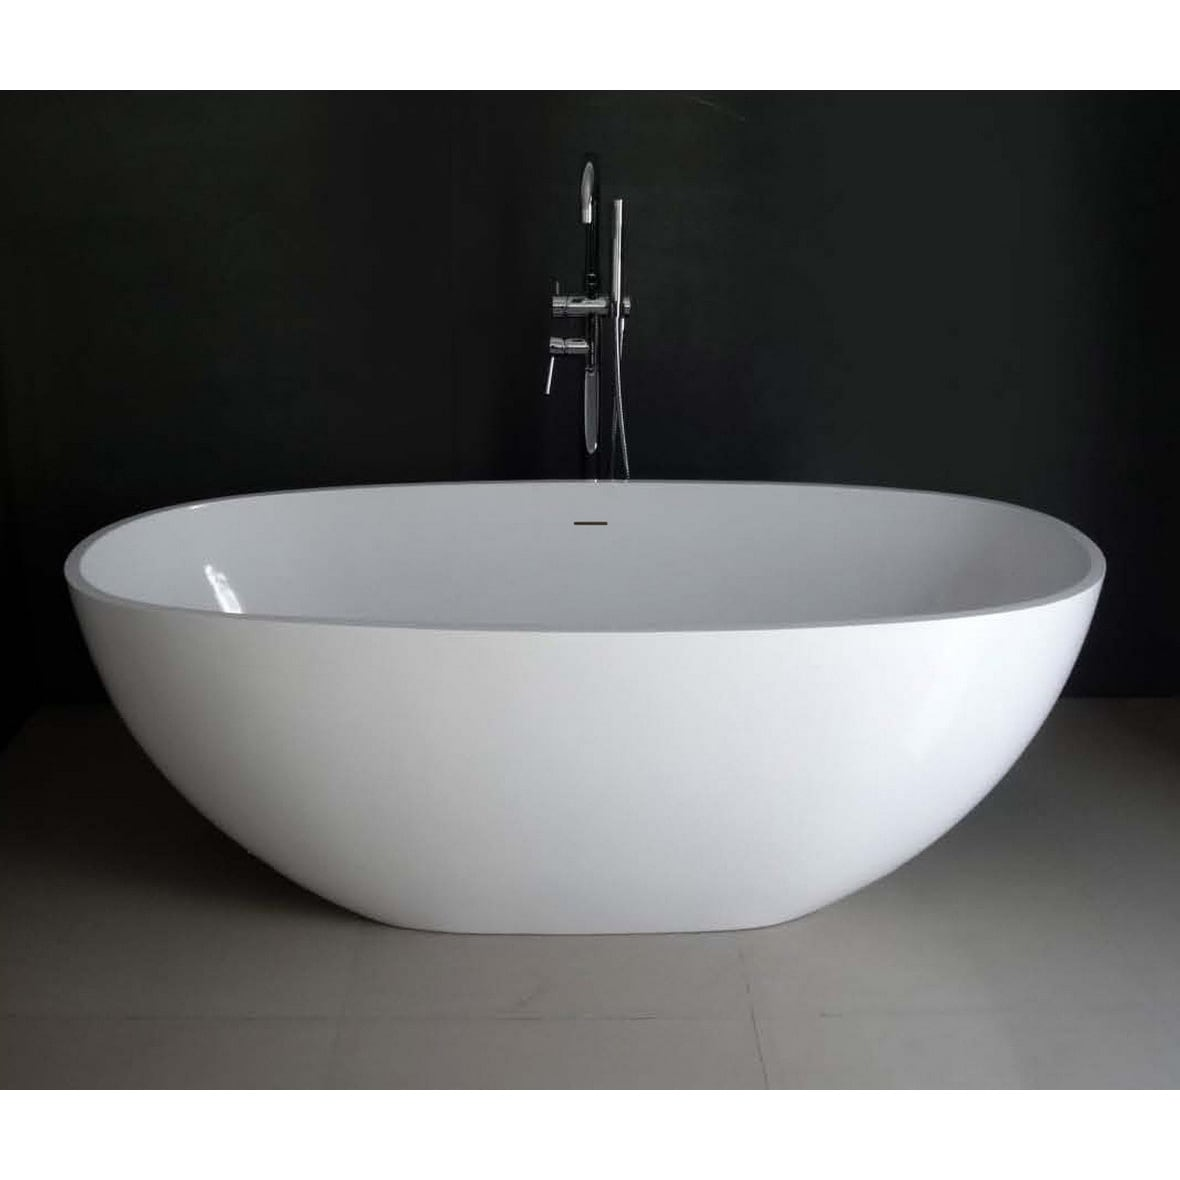 Shop Contemporary 65-inch Solid Surface Freestanding Oval Bathtub ...